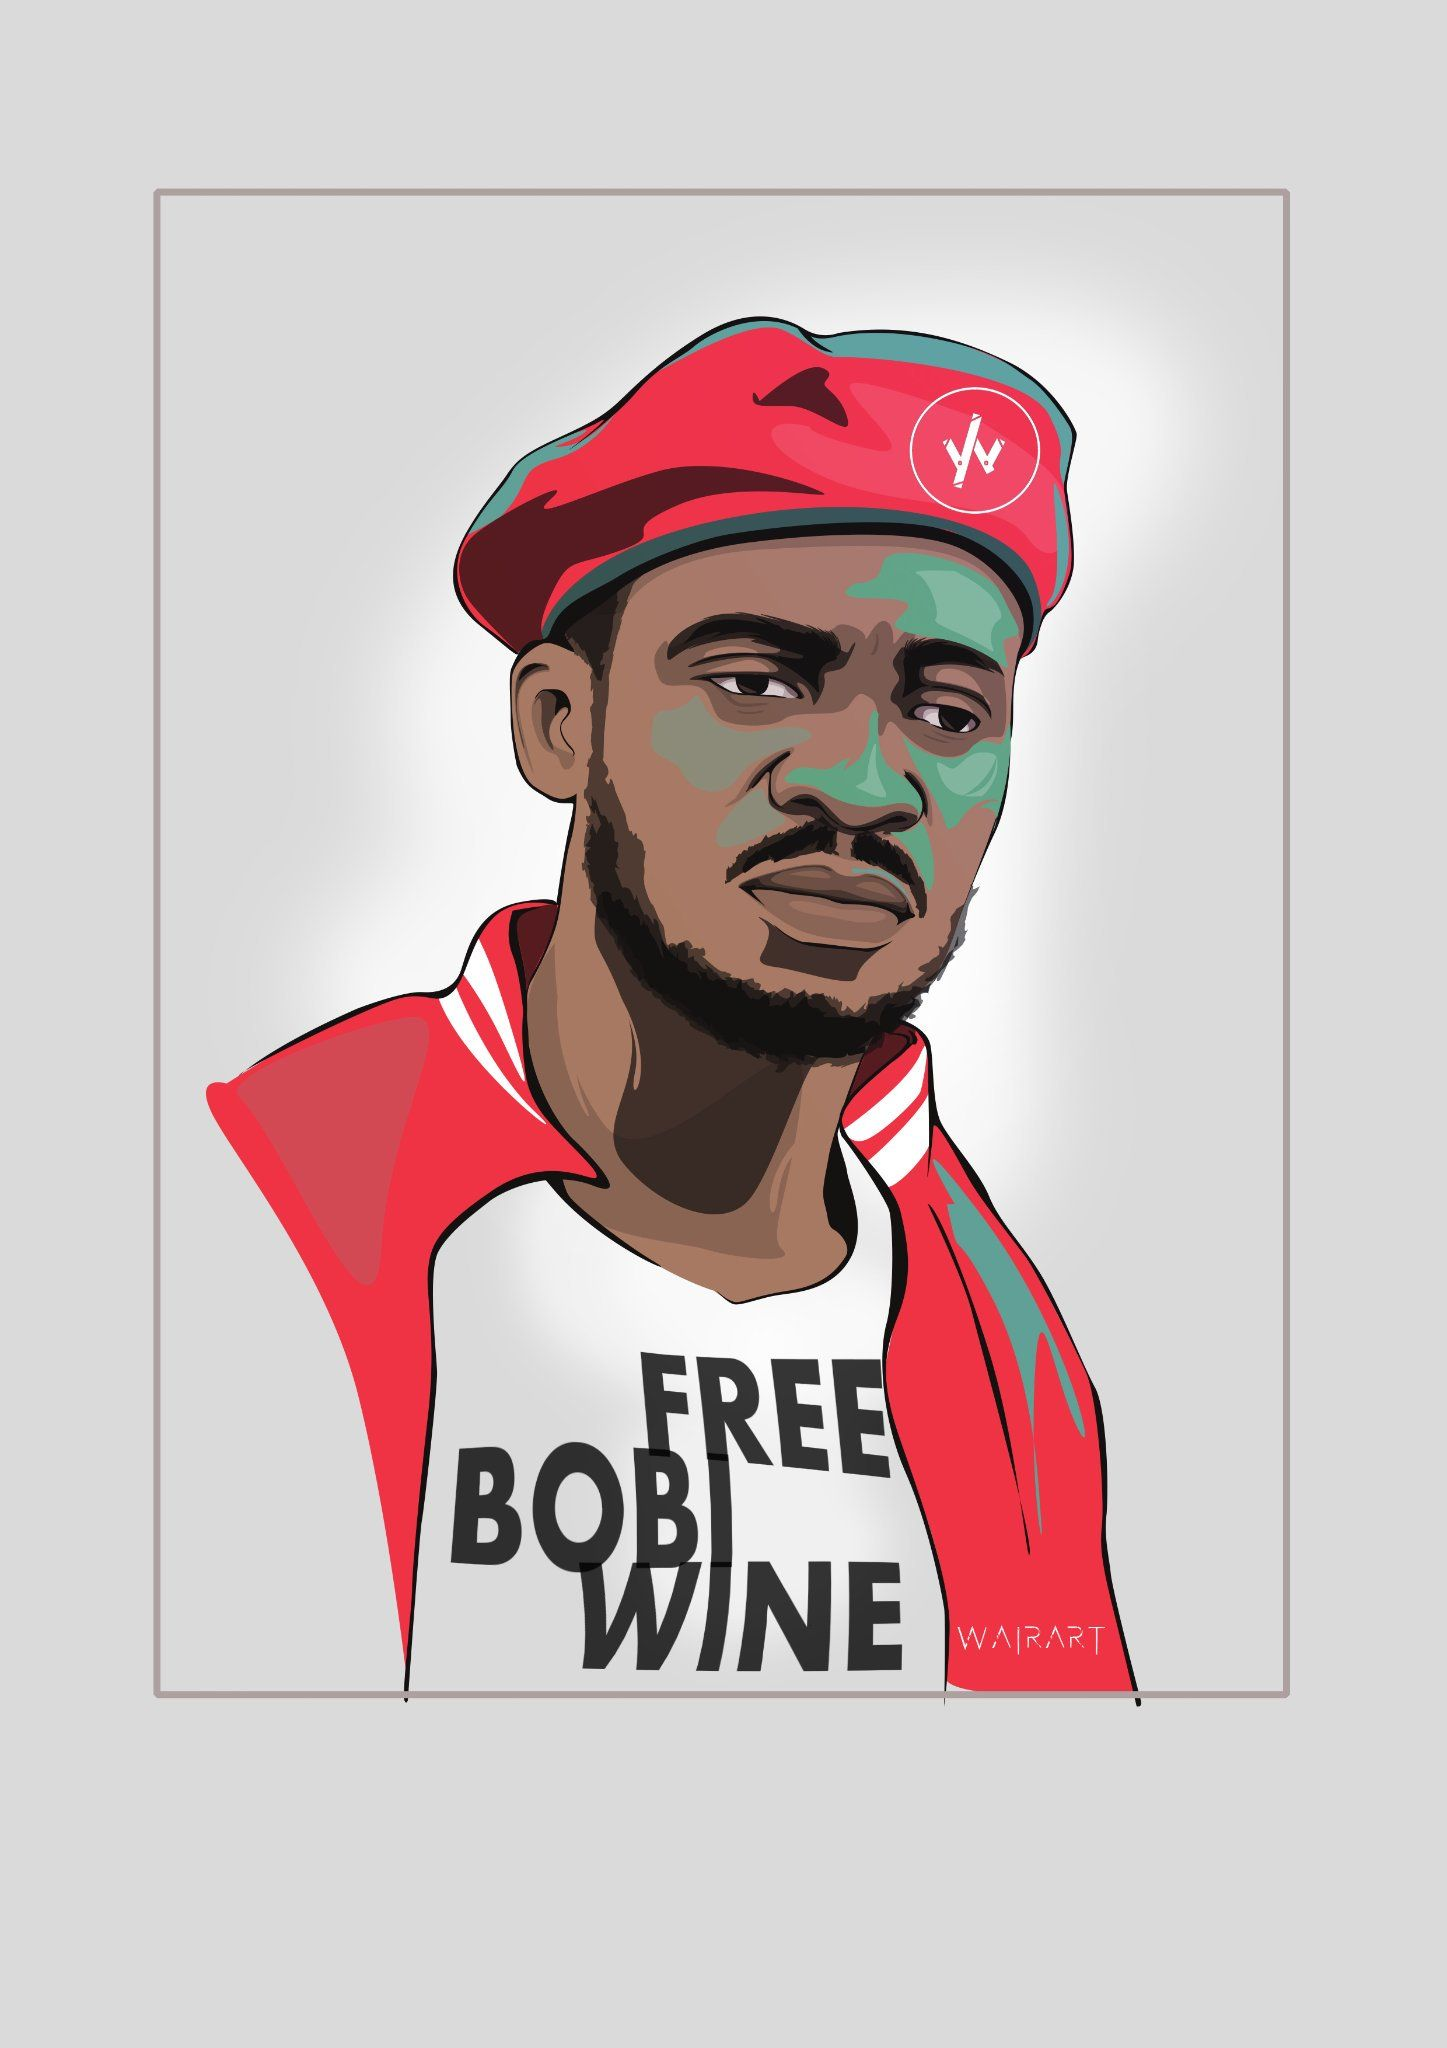 He Bobiwine In A Protest To Release The Ghetto President Freebobiwine Uganda Wairart Peoplepower